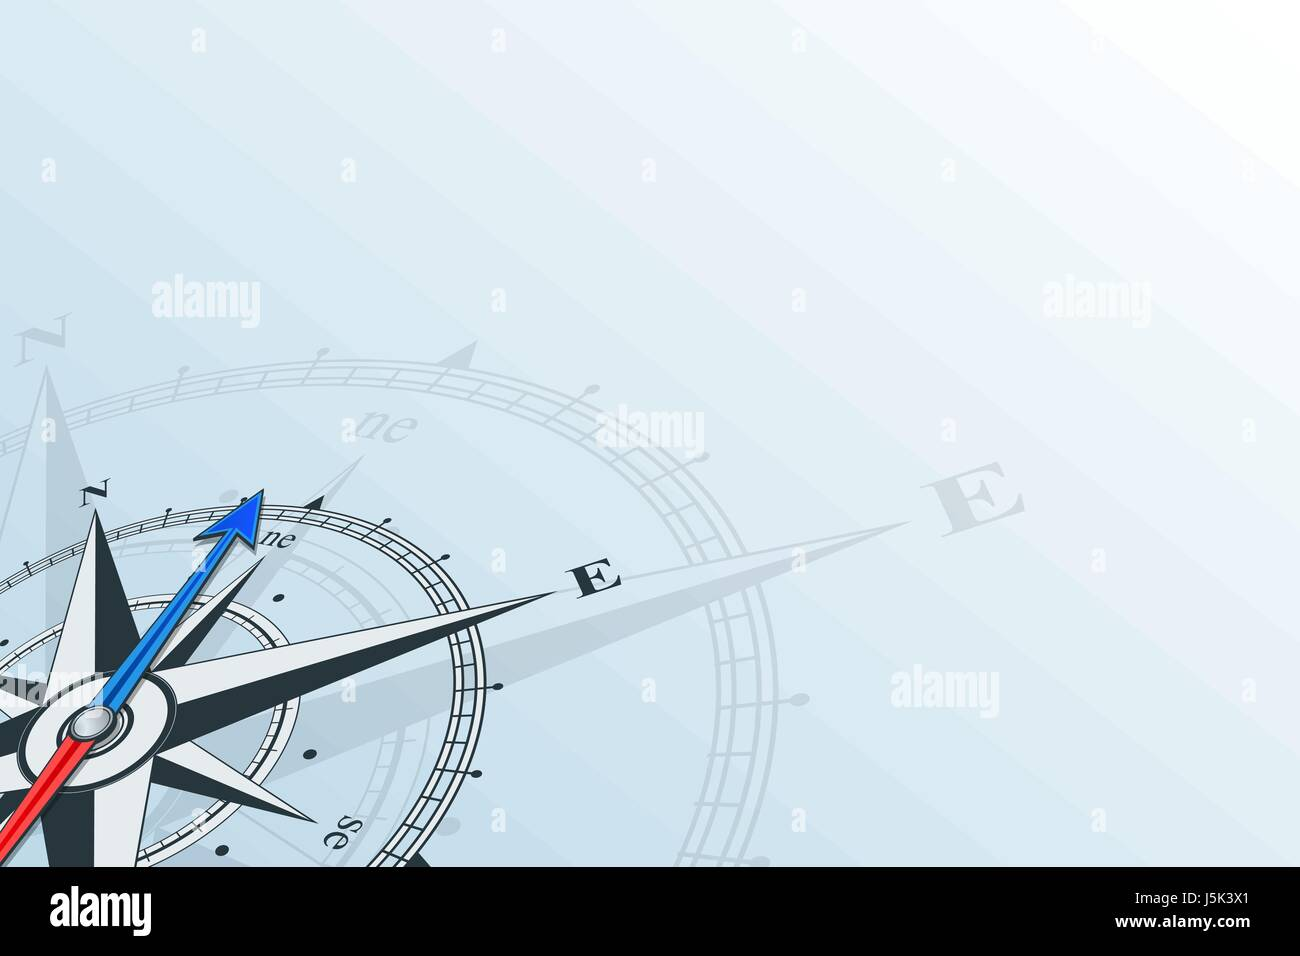 Compass northeast. Compass with wind rose, the arrow points to the northeast. Compass on a blue background. - Stock Vector